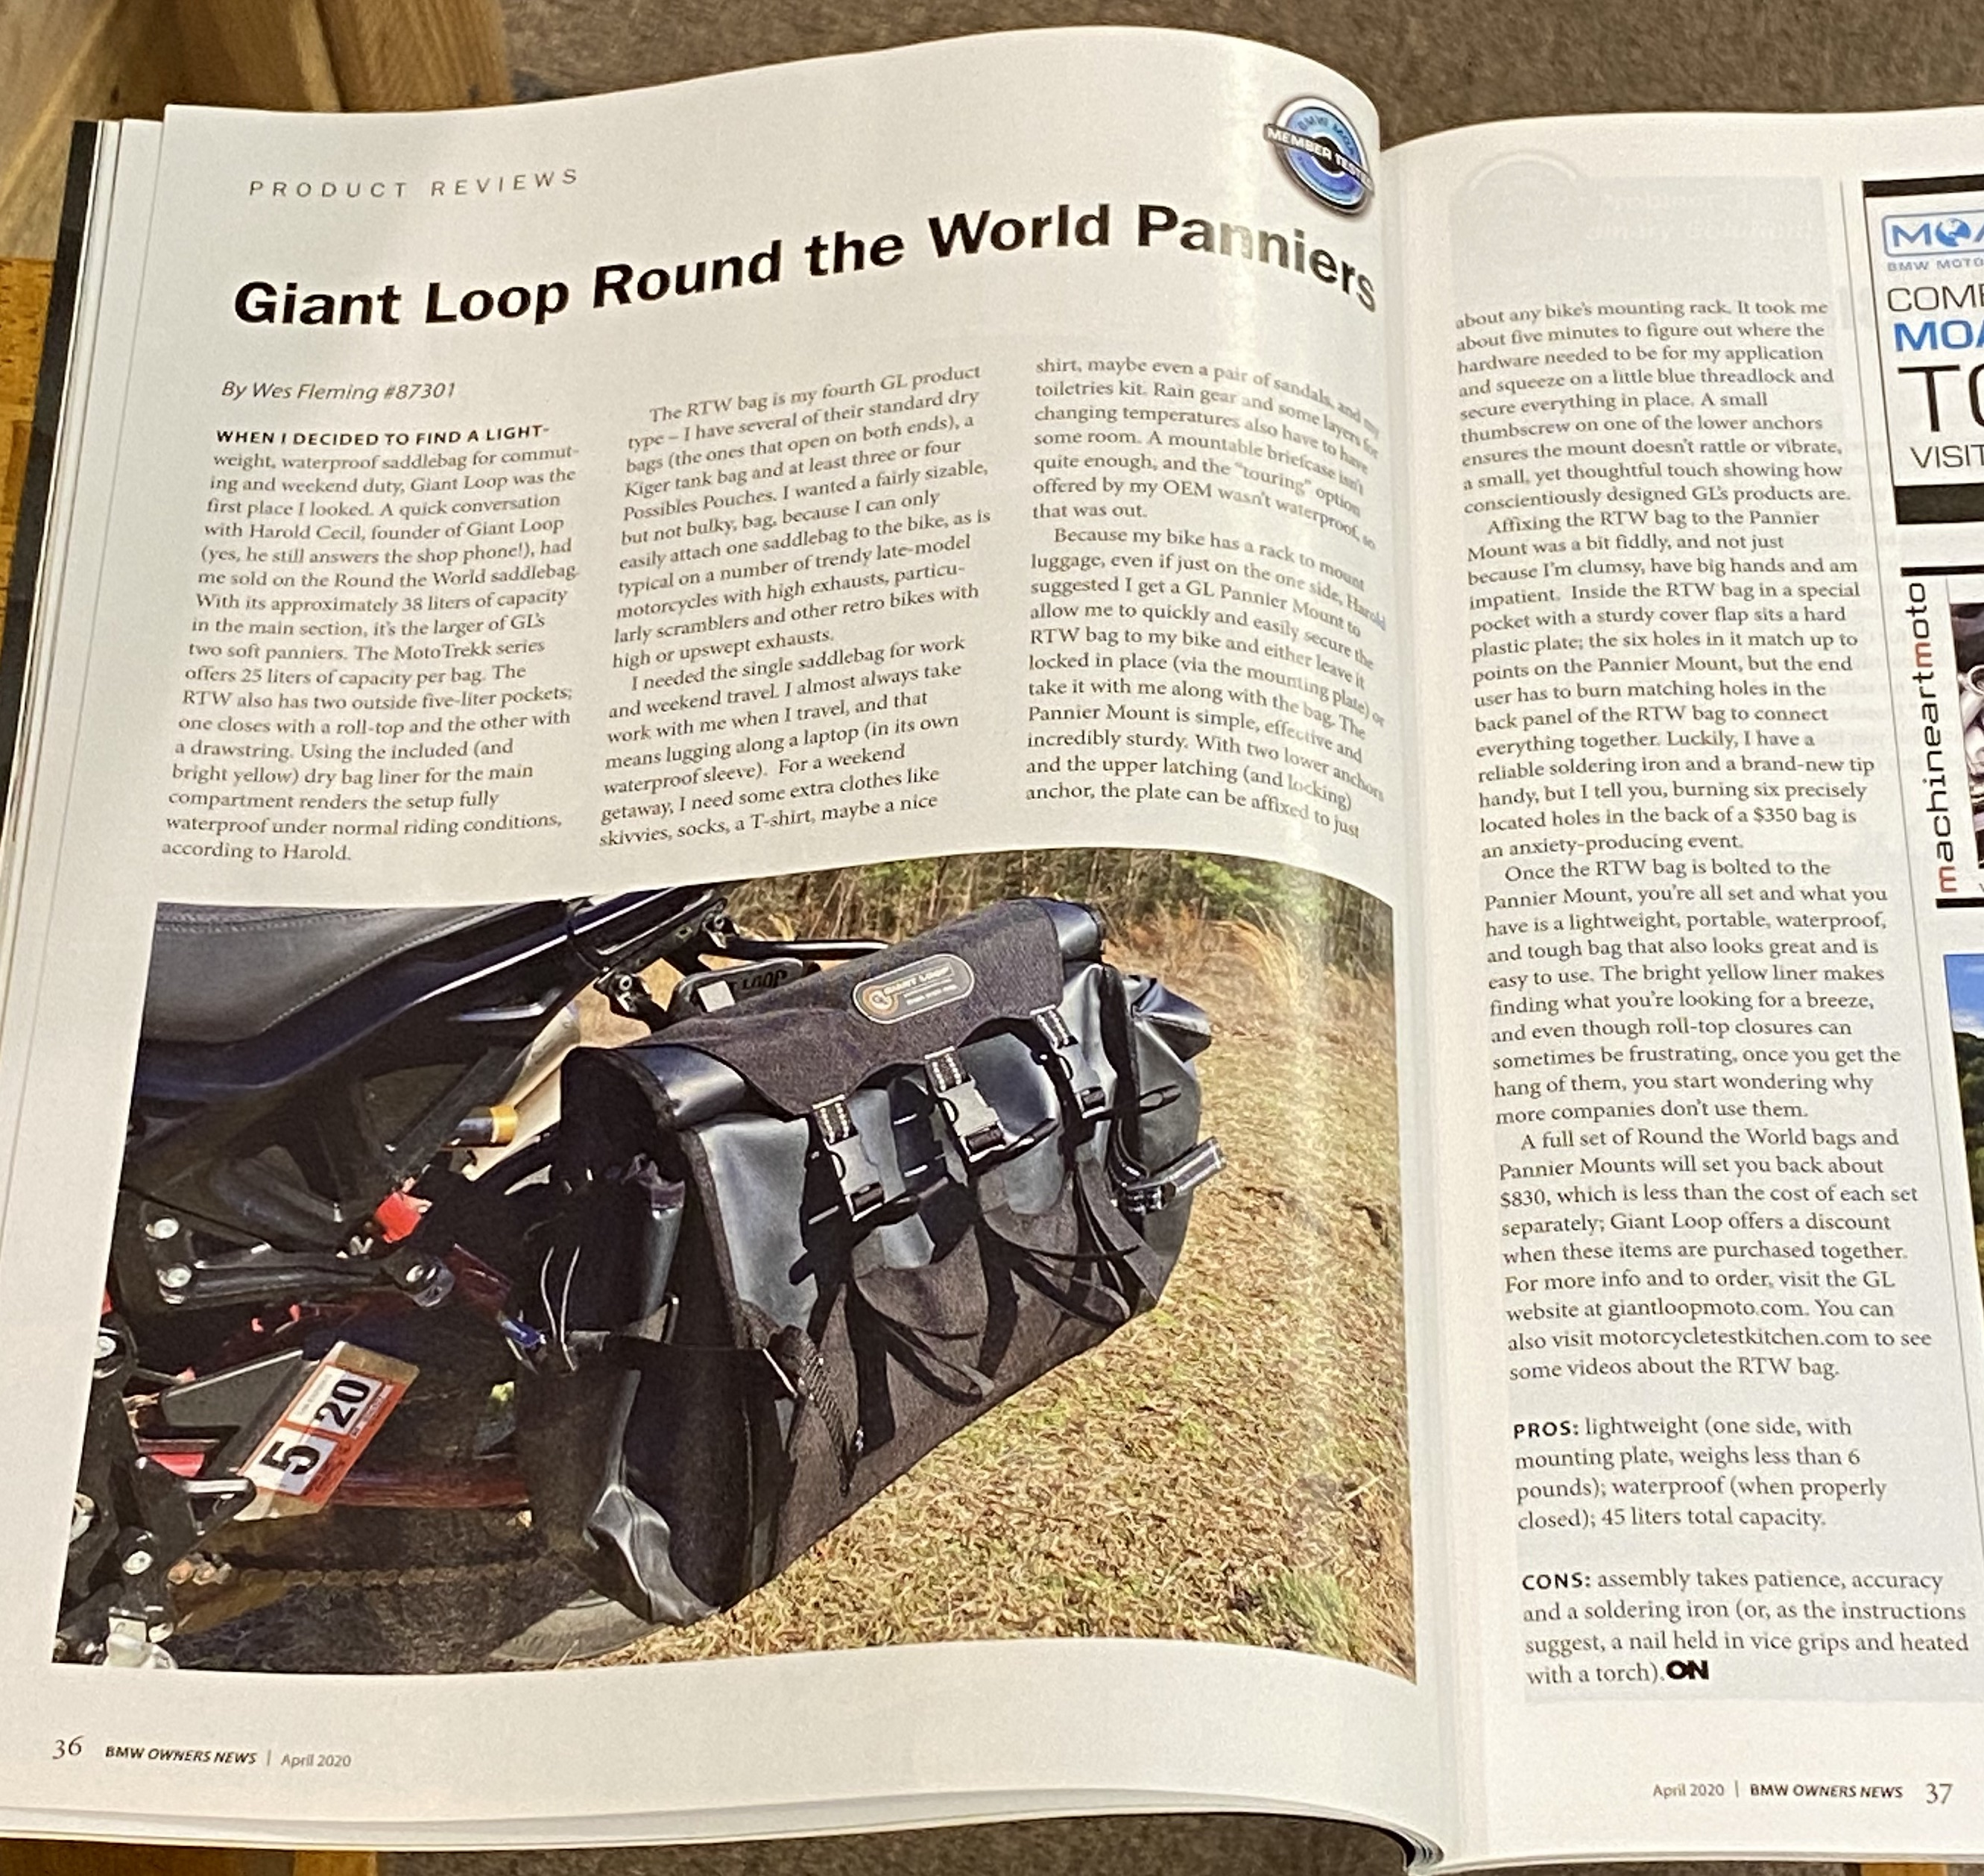 Round The World Panniers Featured in BMW Owners News Magazine